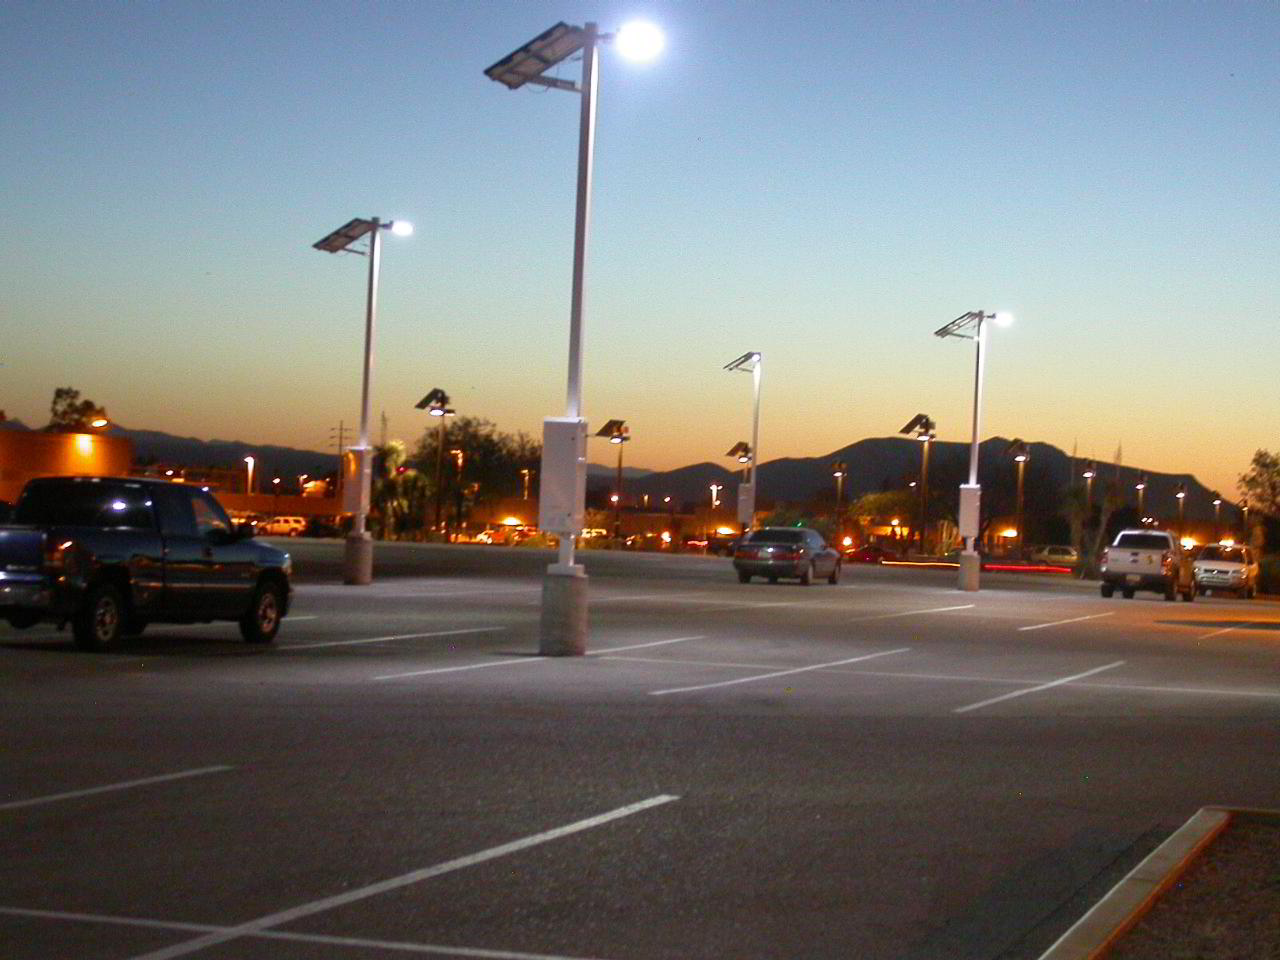 & Pole Lighting West Palm Beach - Parking Lot Lighting - LED